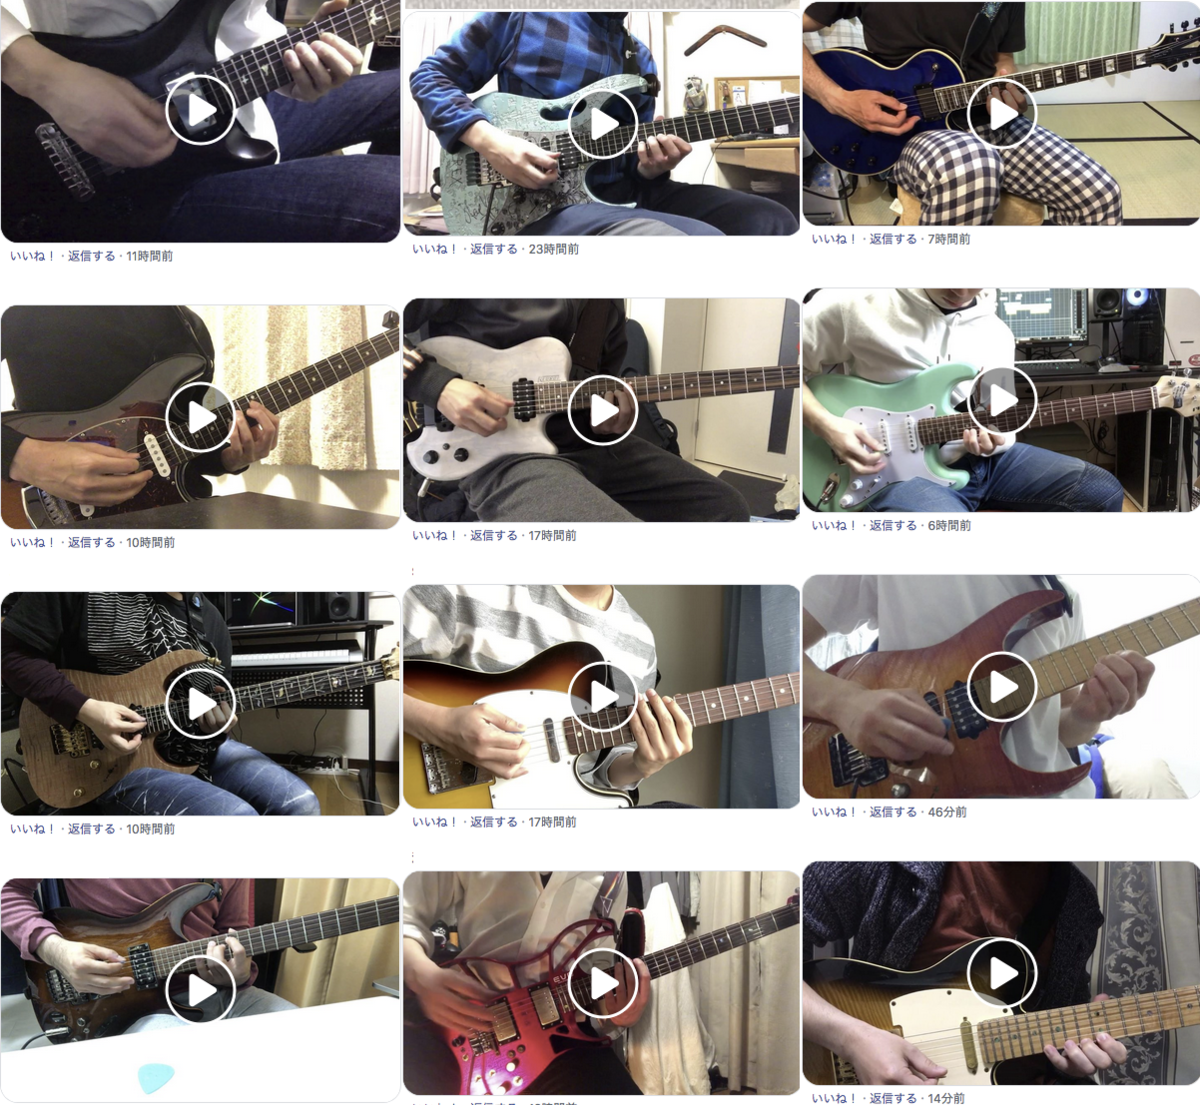 f:id:totalguitarmethod:20190512113706p:plain